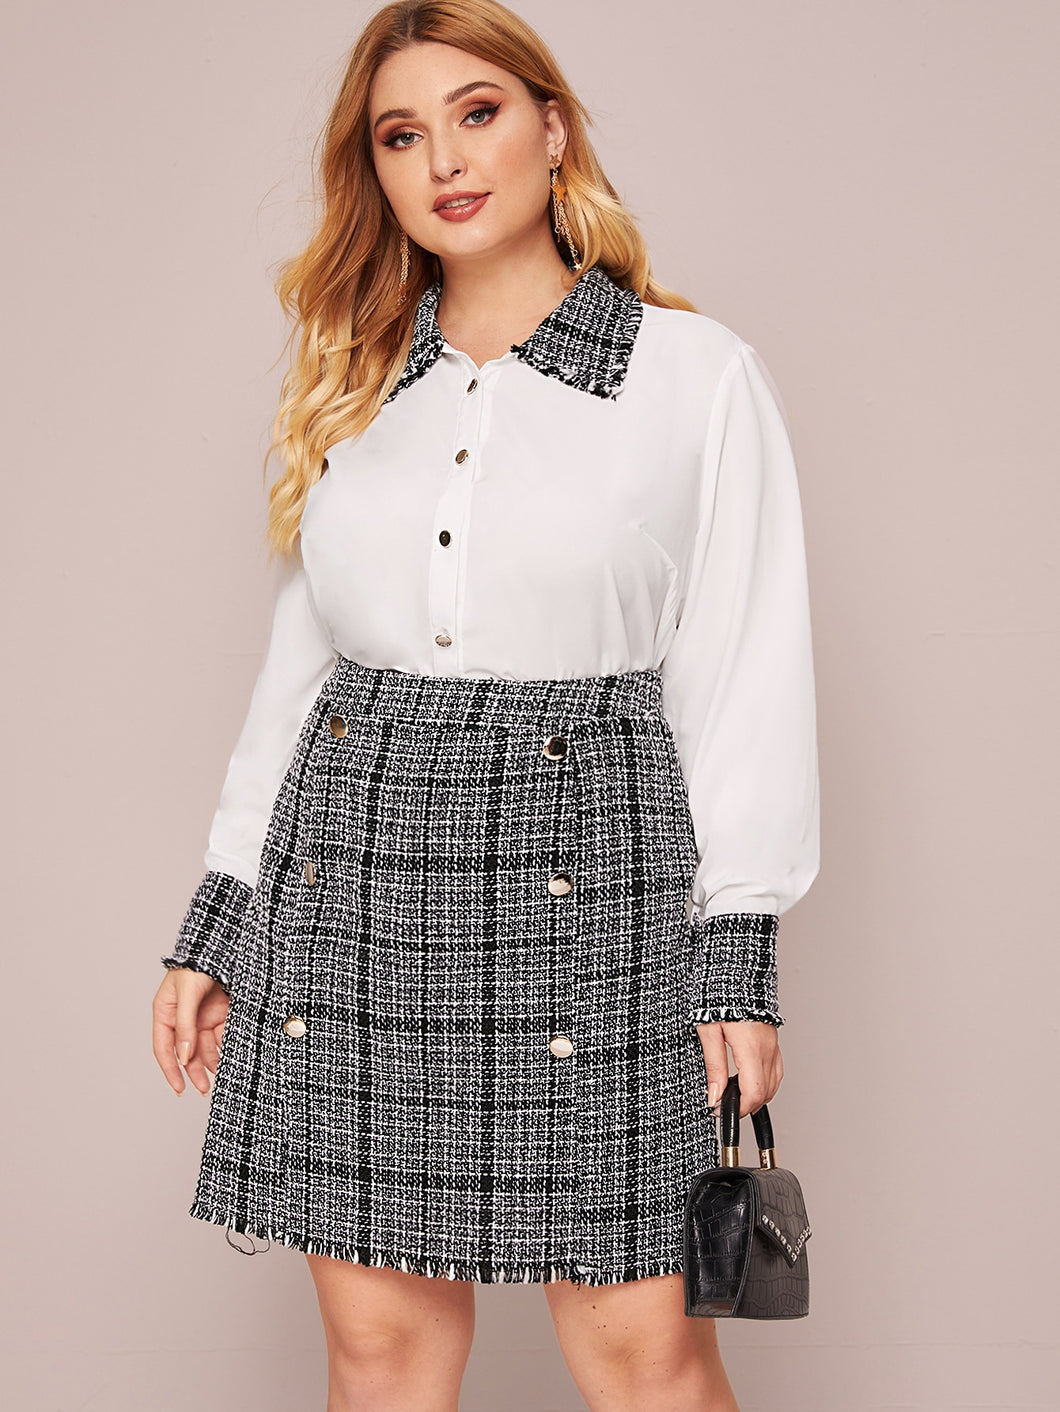 TWO PIECE SET Plus Button Through Contrast Tweed Blouse With Skirt - EK CHIC